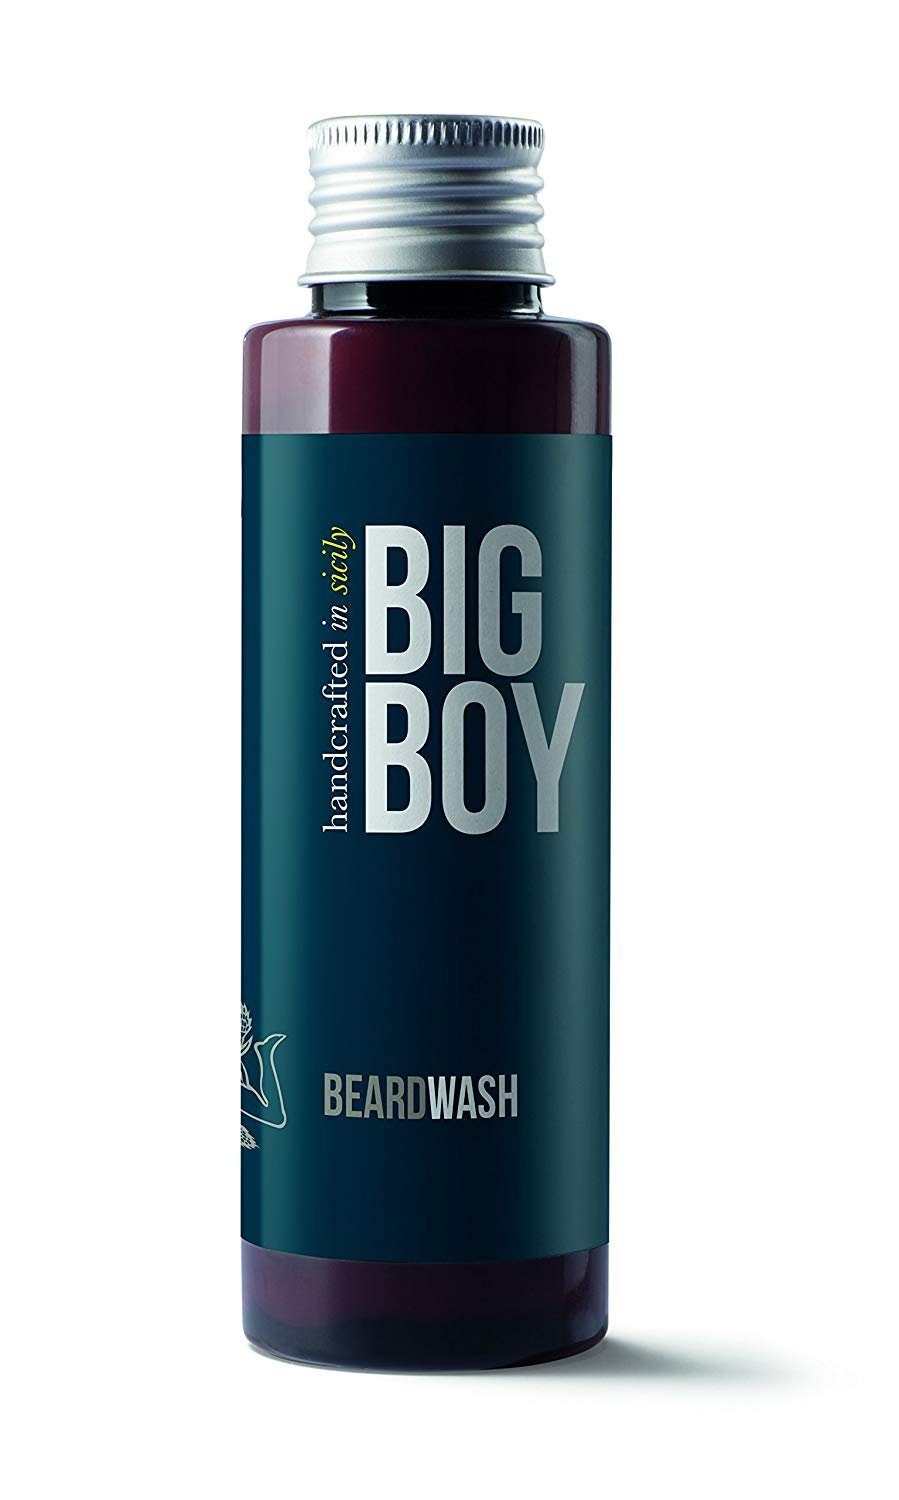 BIG BOY BEARD WASH